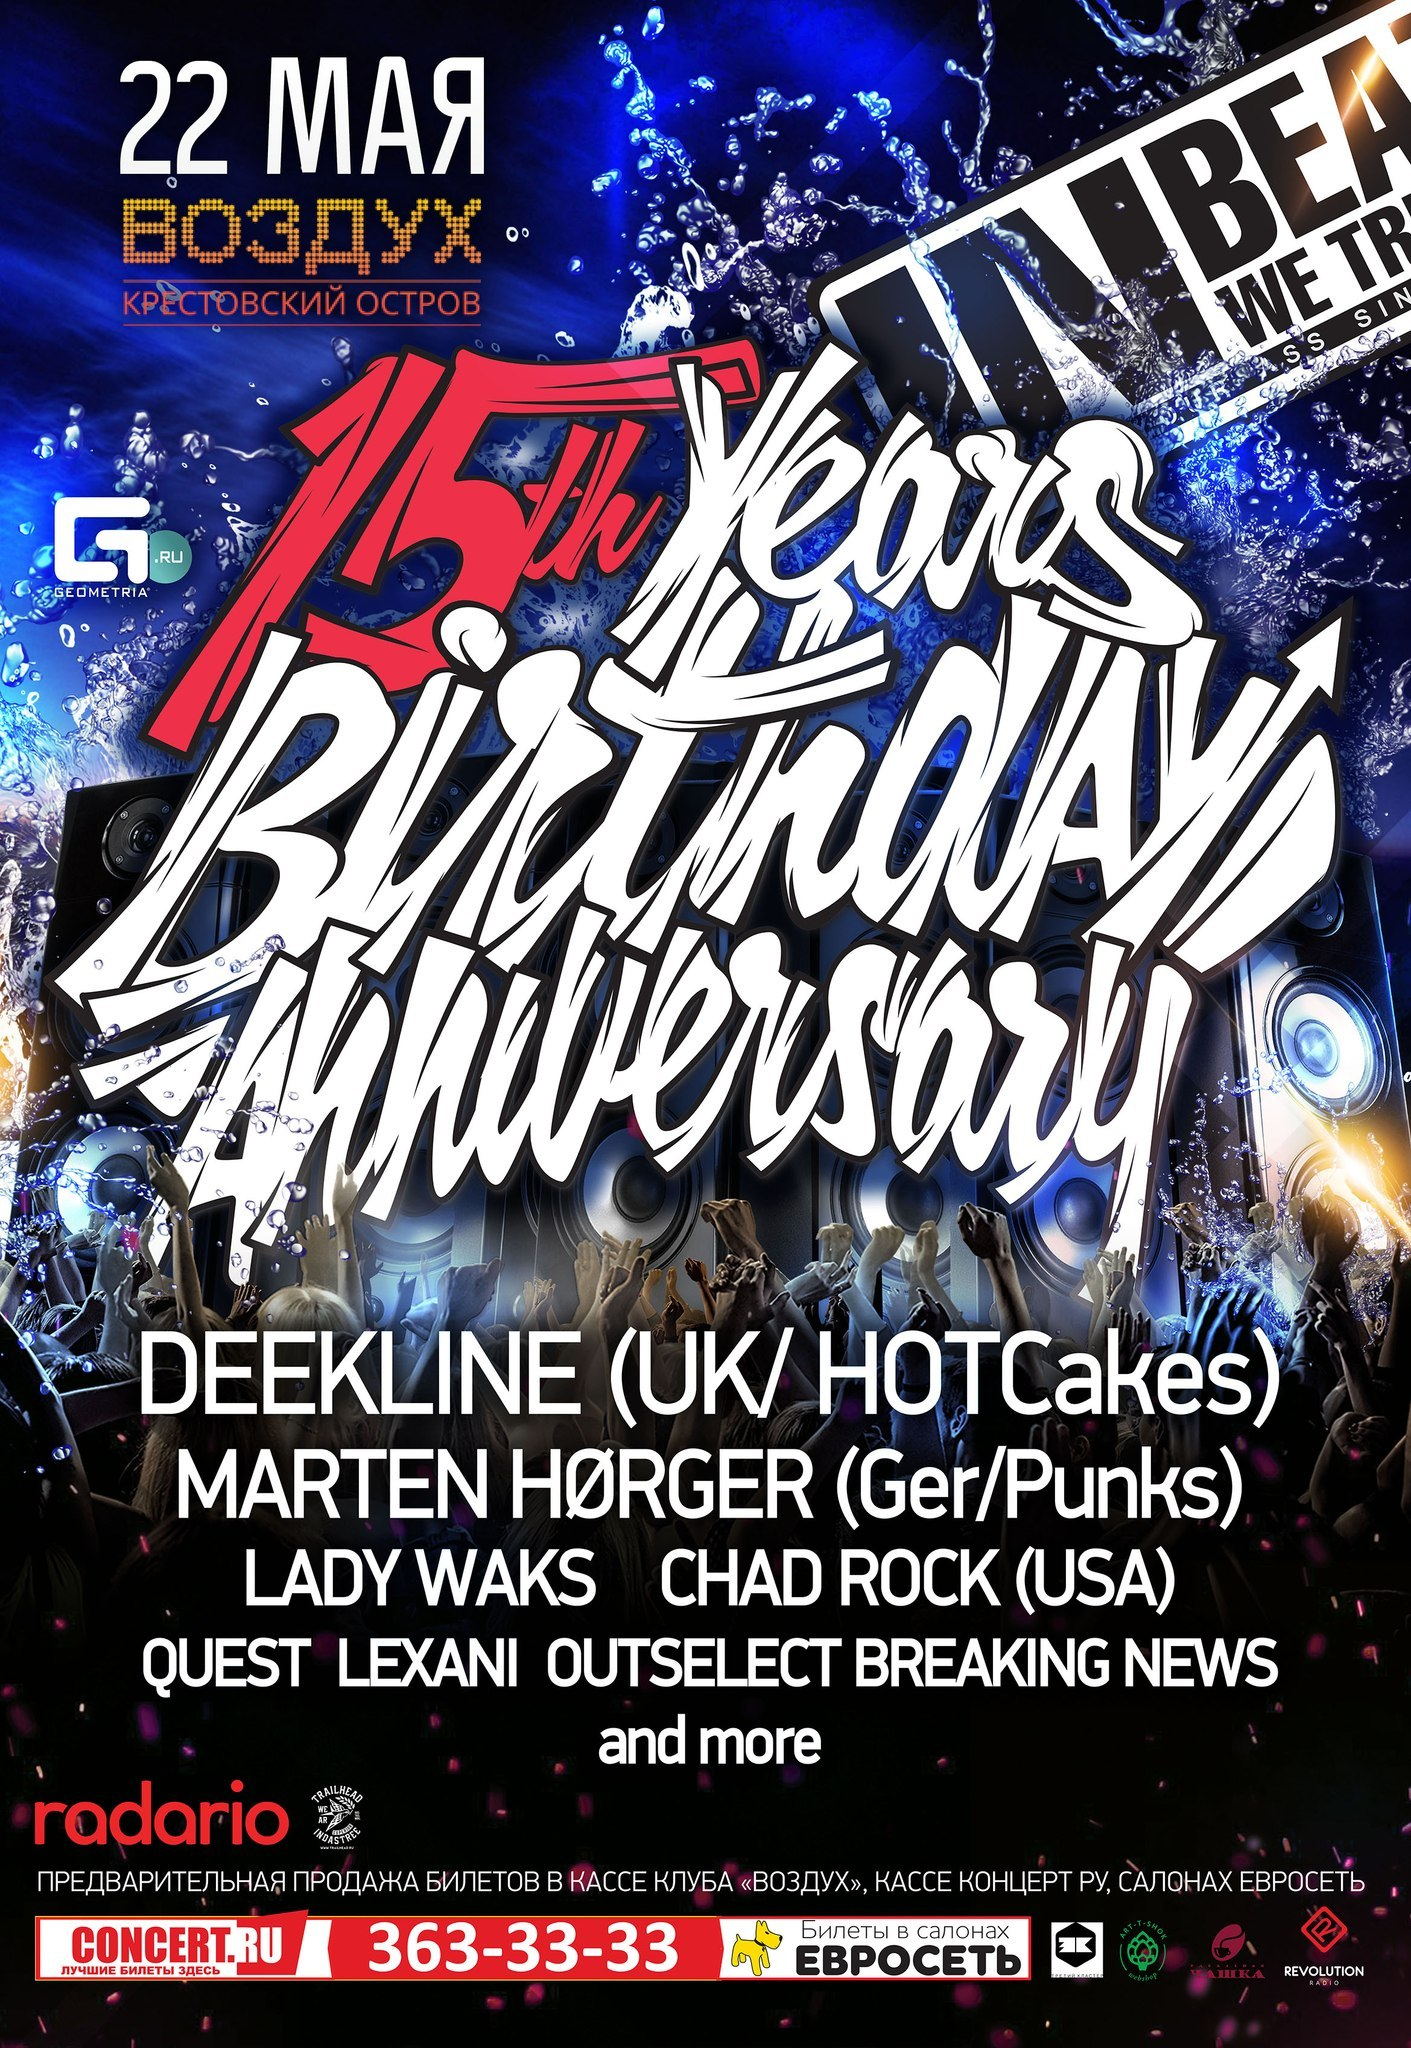 IBWT 15 YEARS ANNIVERSARY TOUR